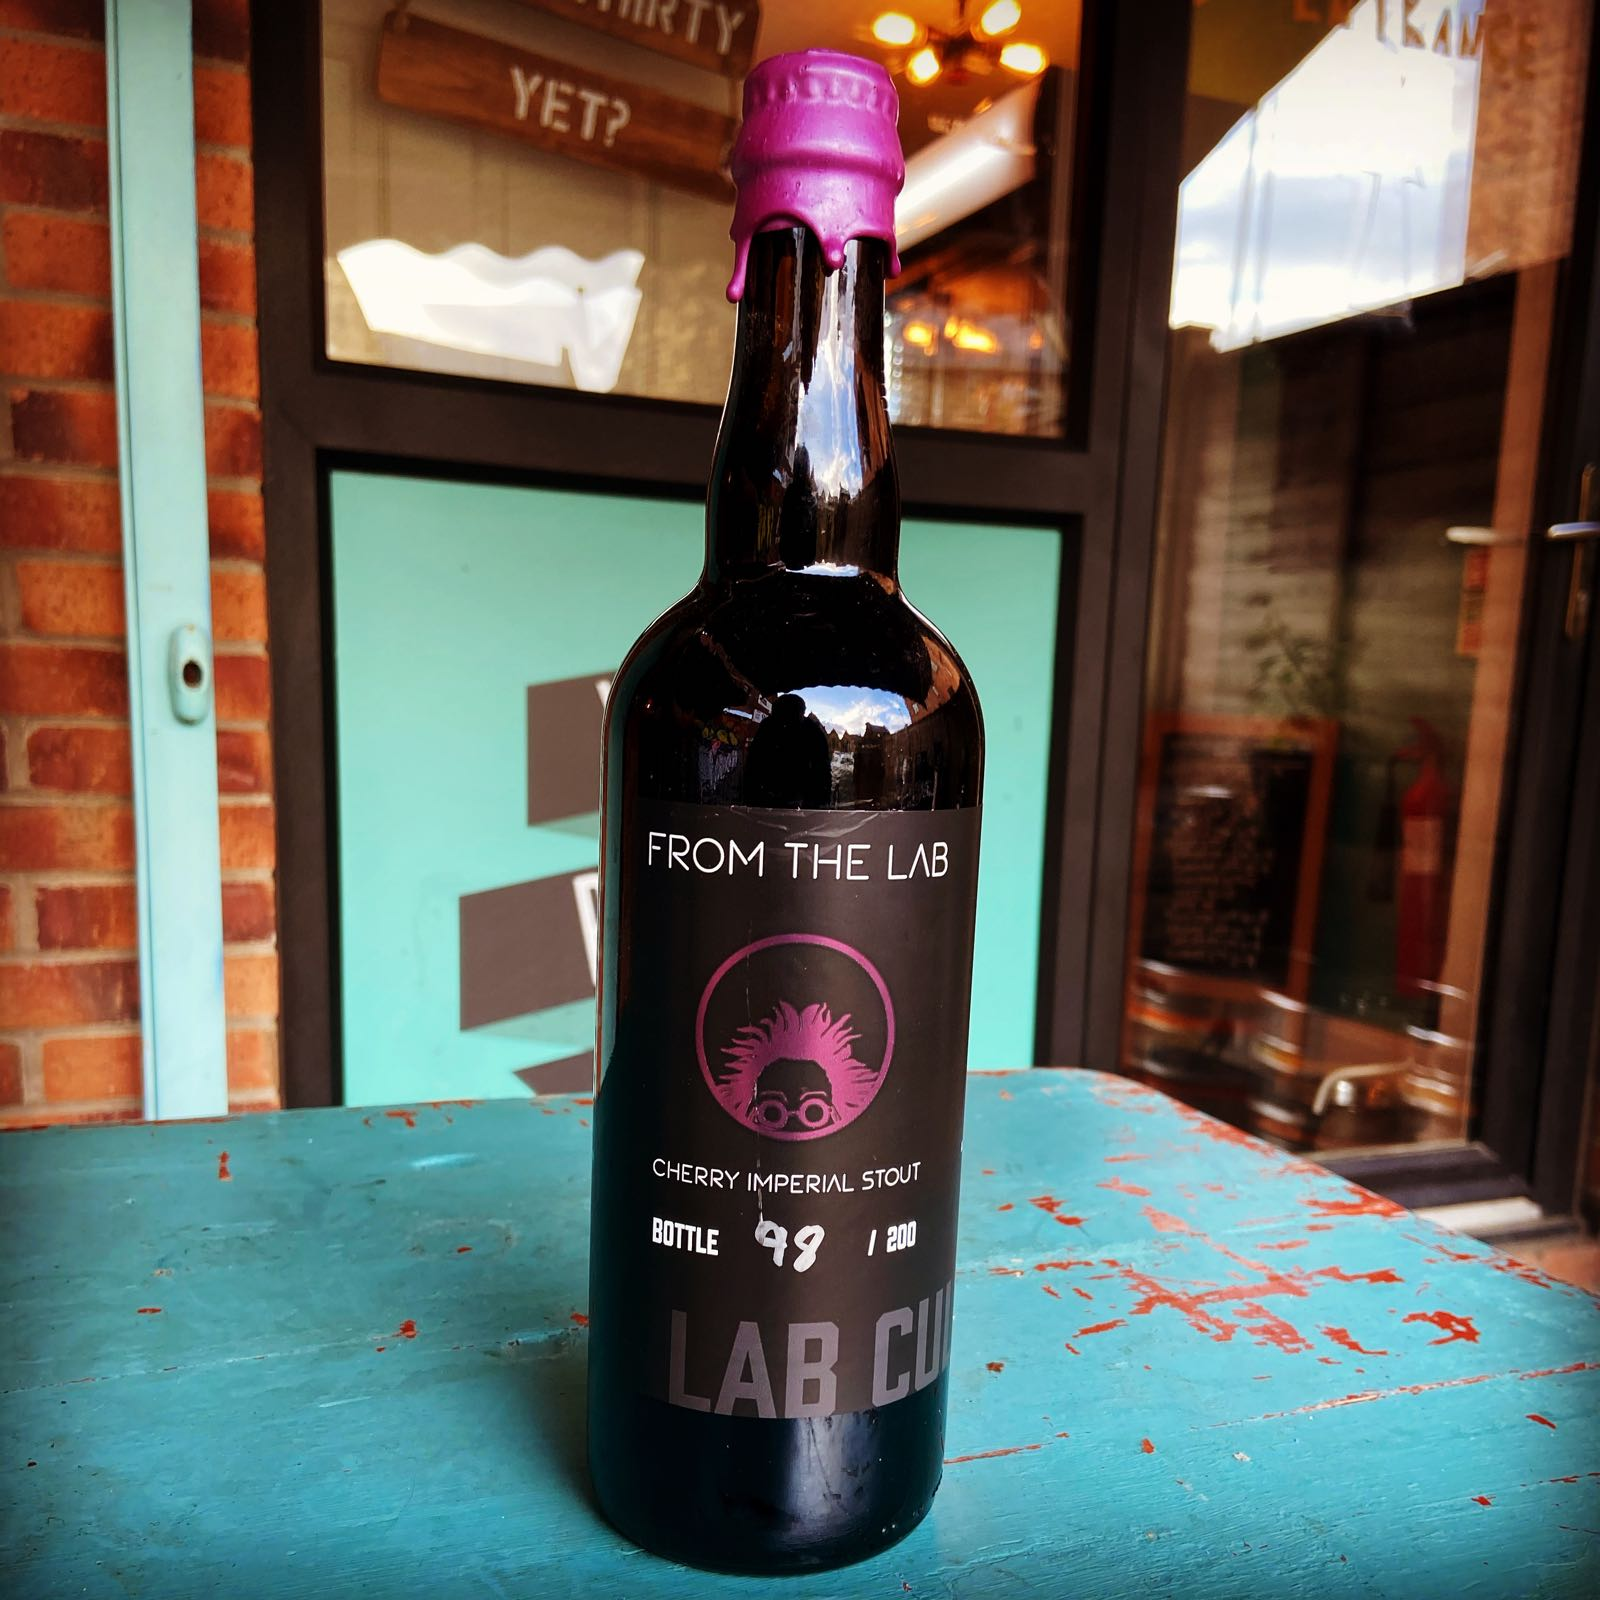 Lab Culture Cherry Imperial Stout 10% 750ml